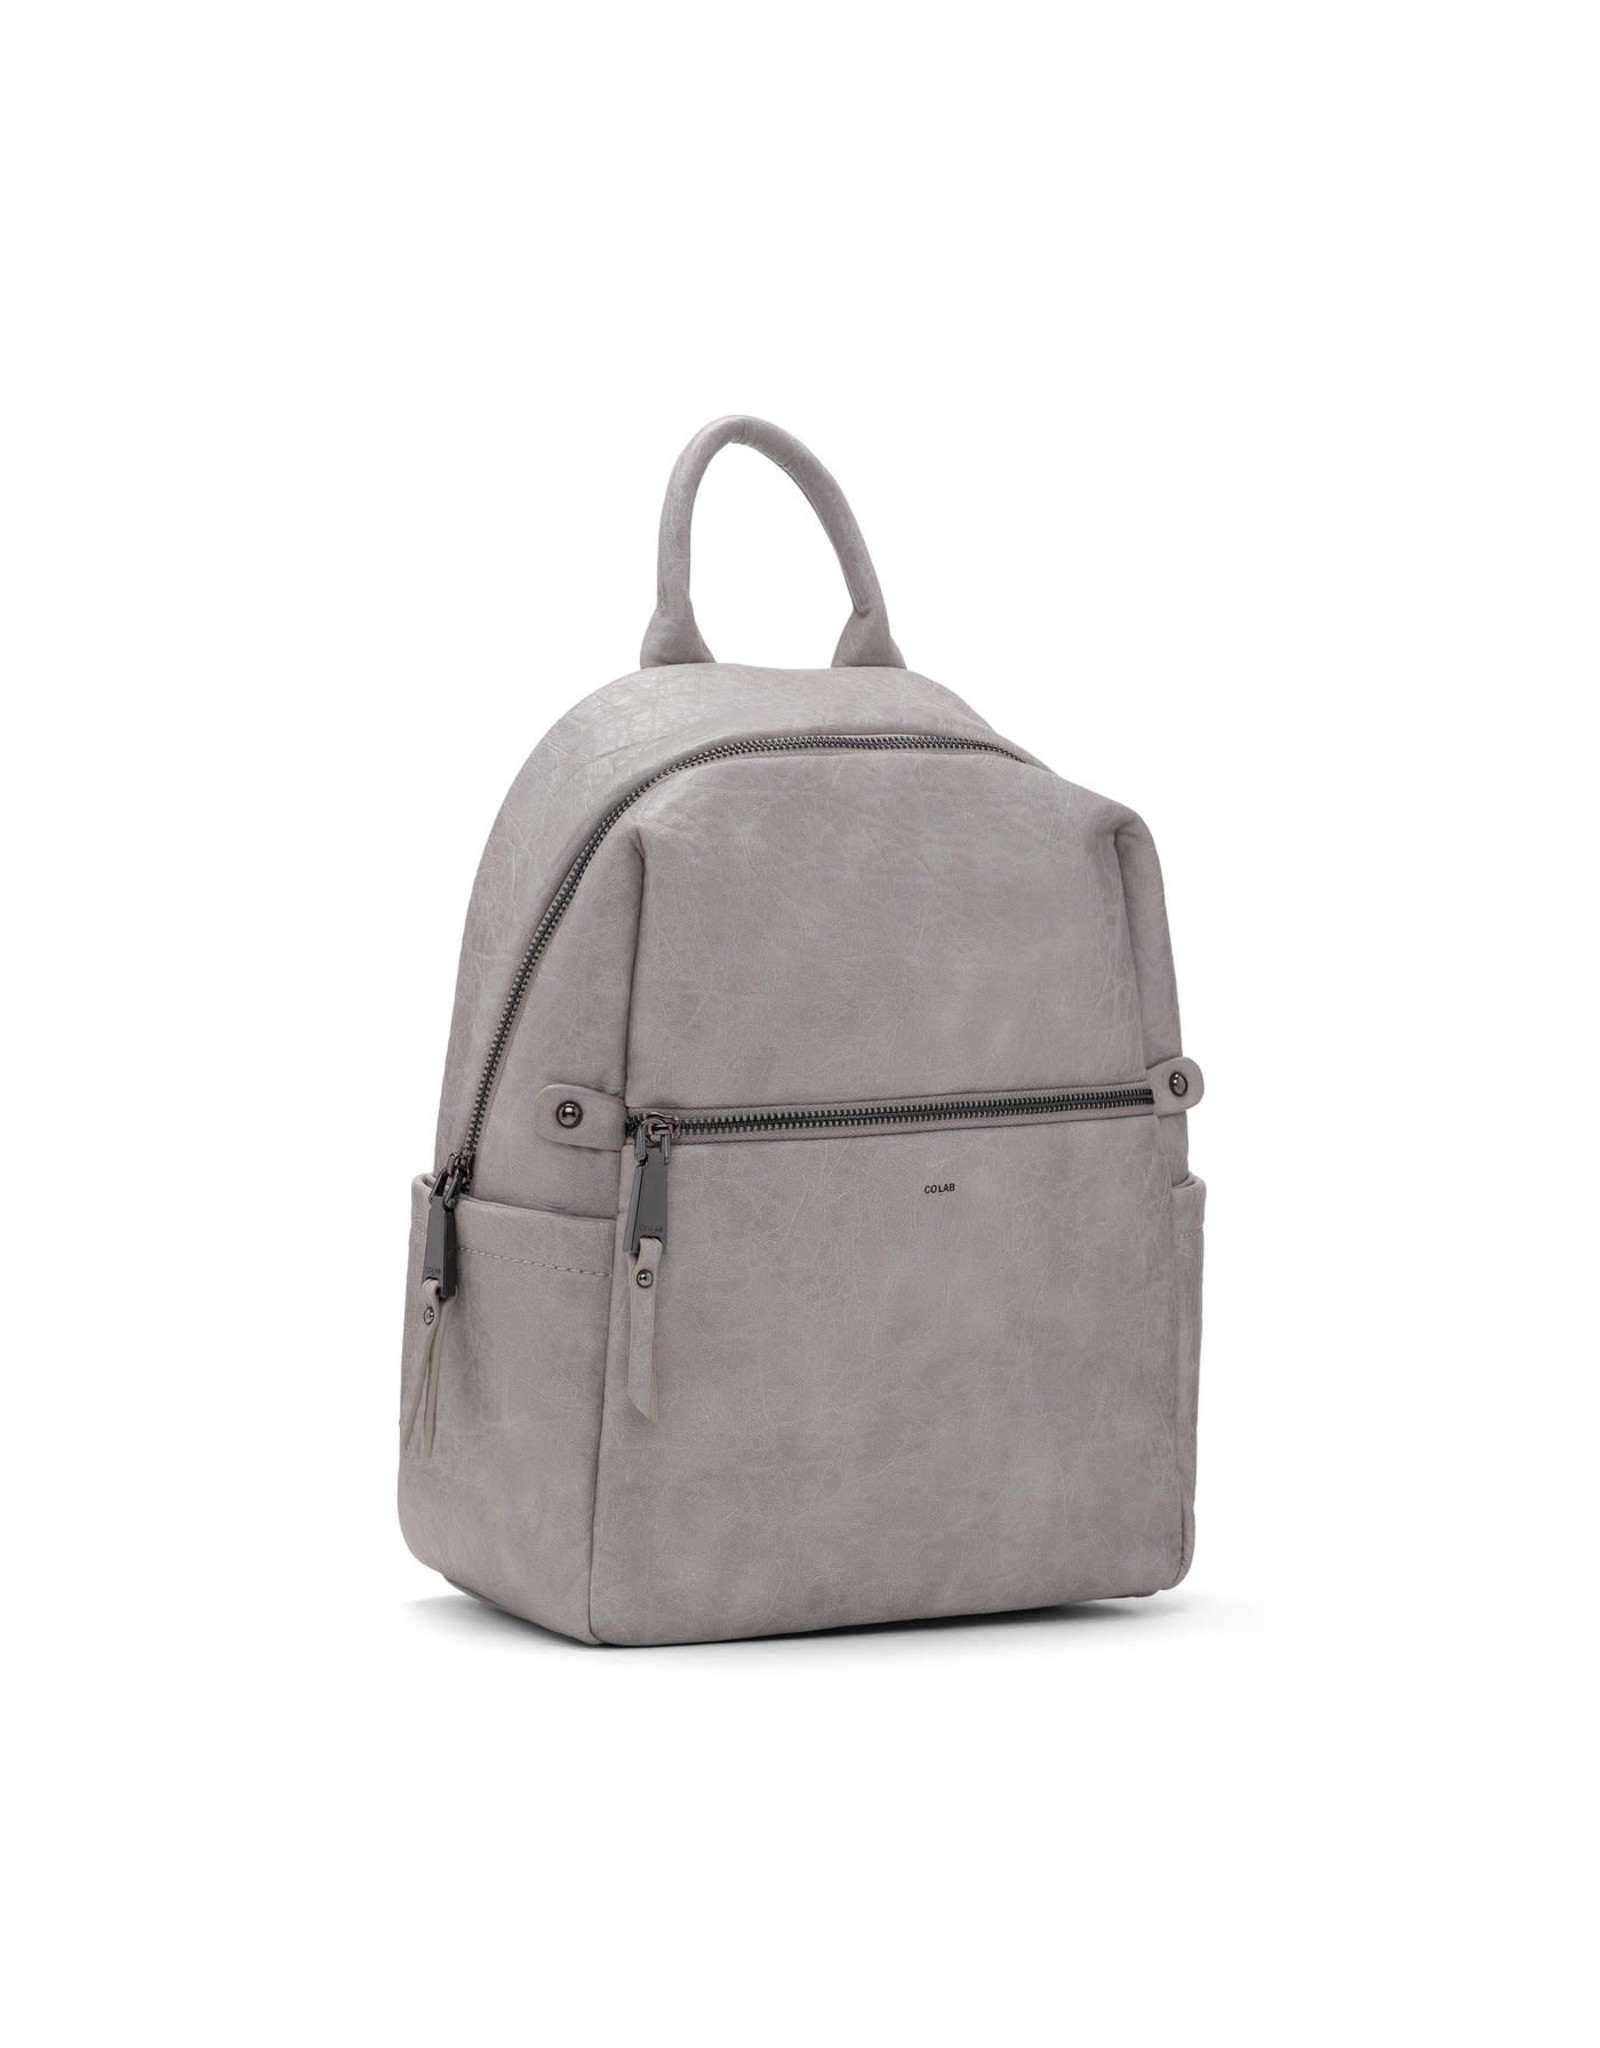 co-lab co-lab Edgy Backpack